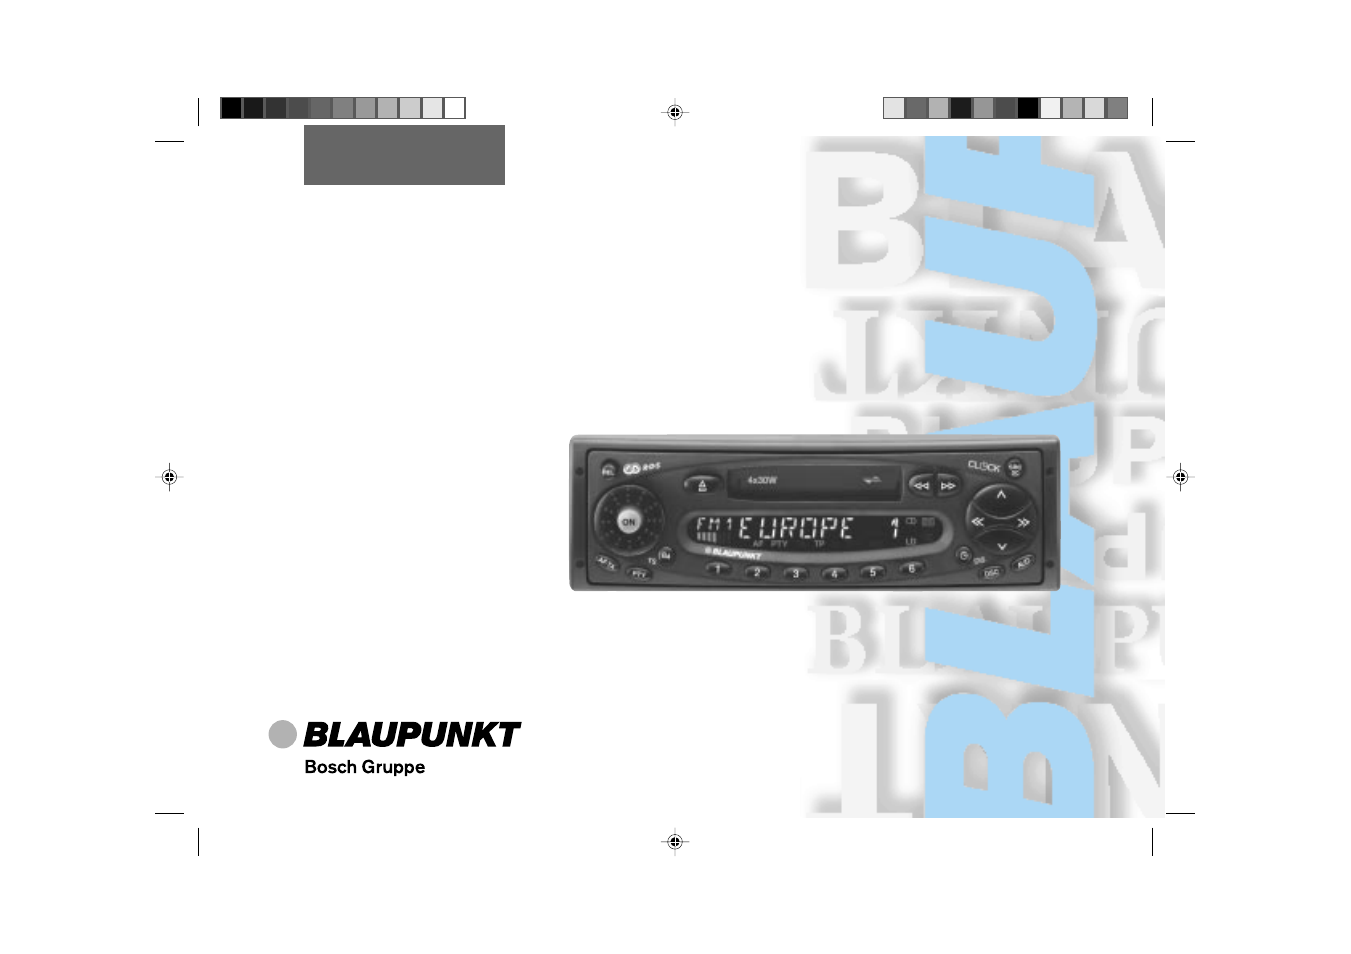 Blaupunkt Wiring Diagram Page 5 And Schematics Bmw Symbols Dresden Rcr 128 User Manual 18 Pages Also For Boston Rh Manuair Com Harness